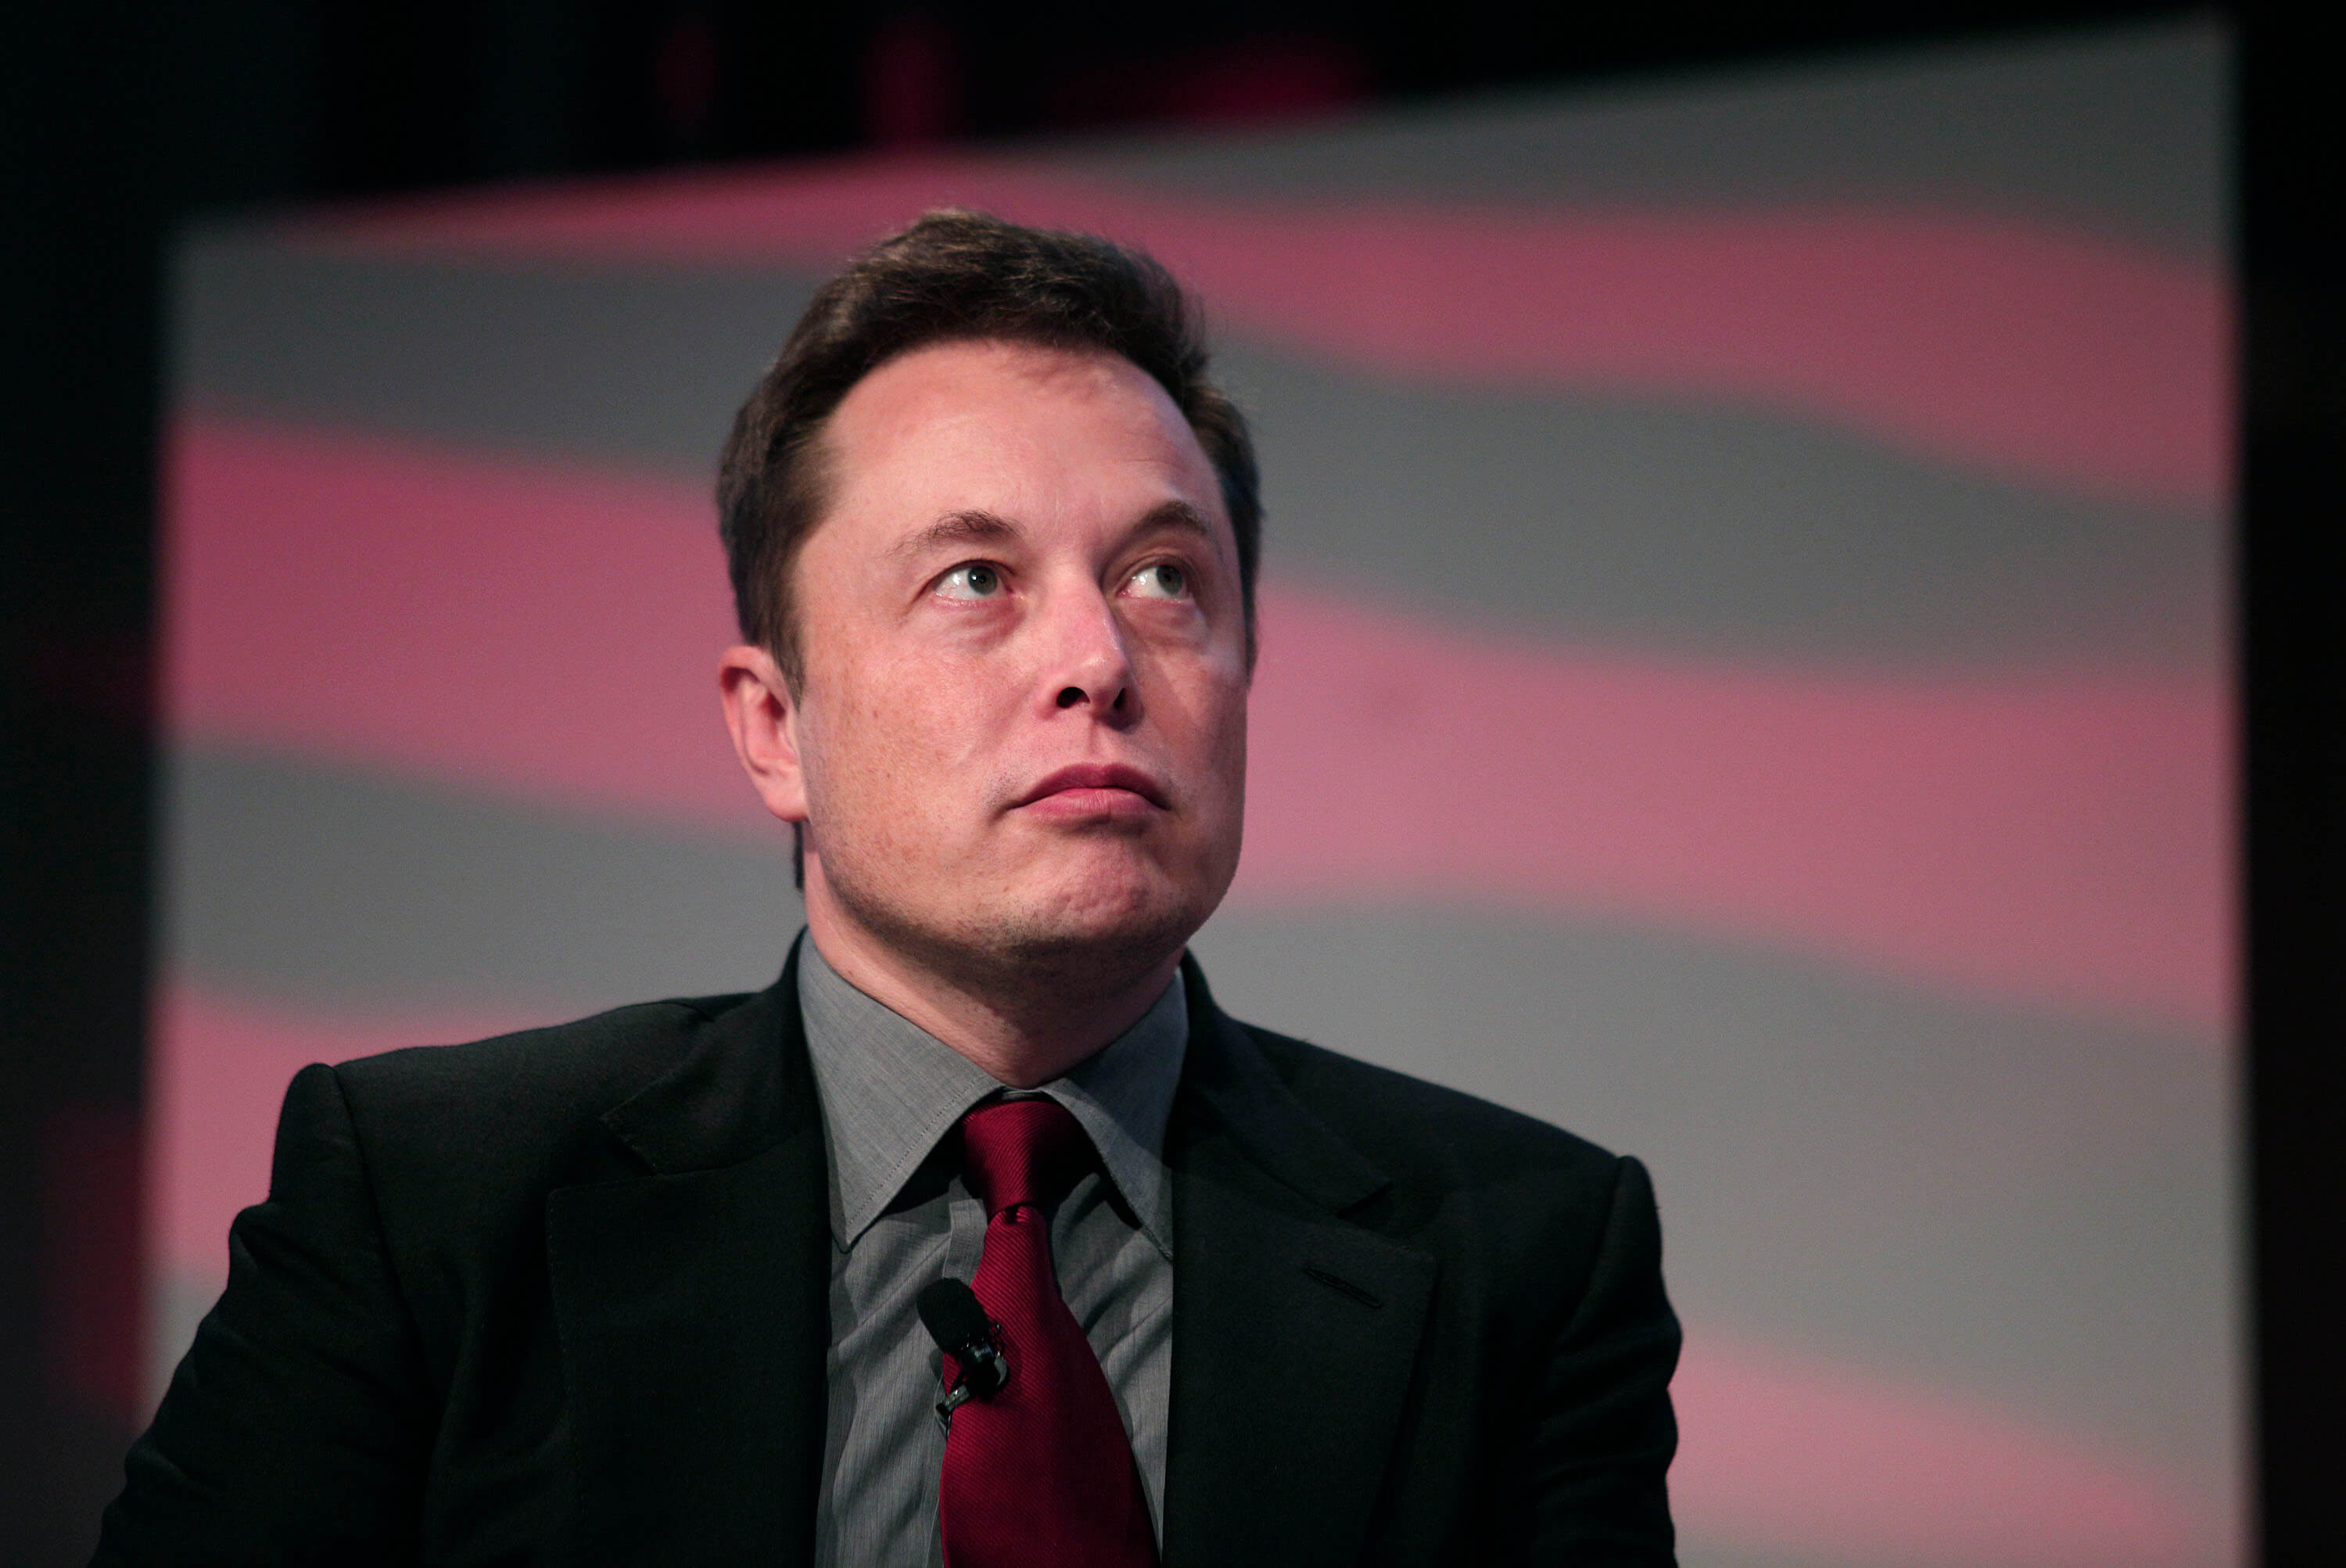 Elon Musk: Advanced AI development should be regulated, including Tesla